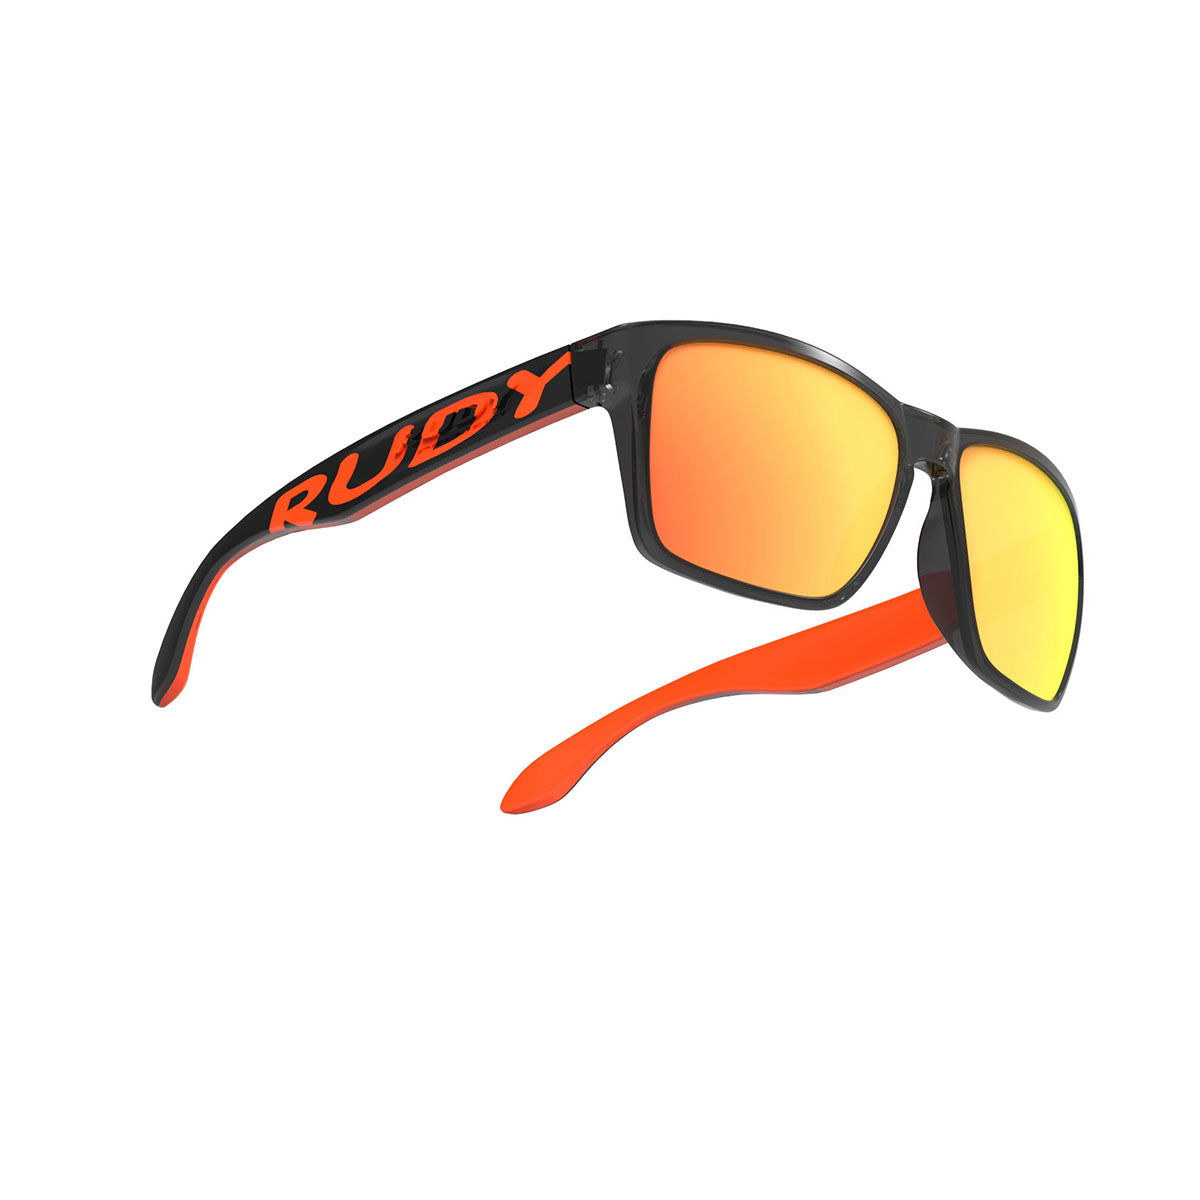 Rudy Project - Spinhawk - frame color: Crystal Ash Orange Fluo - lens color: Multilaser orange - Bumper Color:  - photo angle: Bottom Front Angle Variant Hover Image